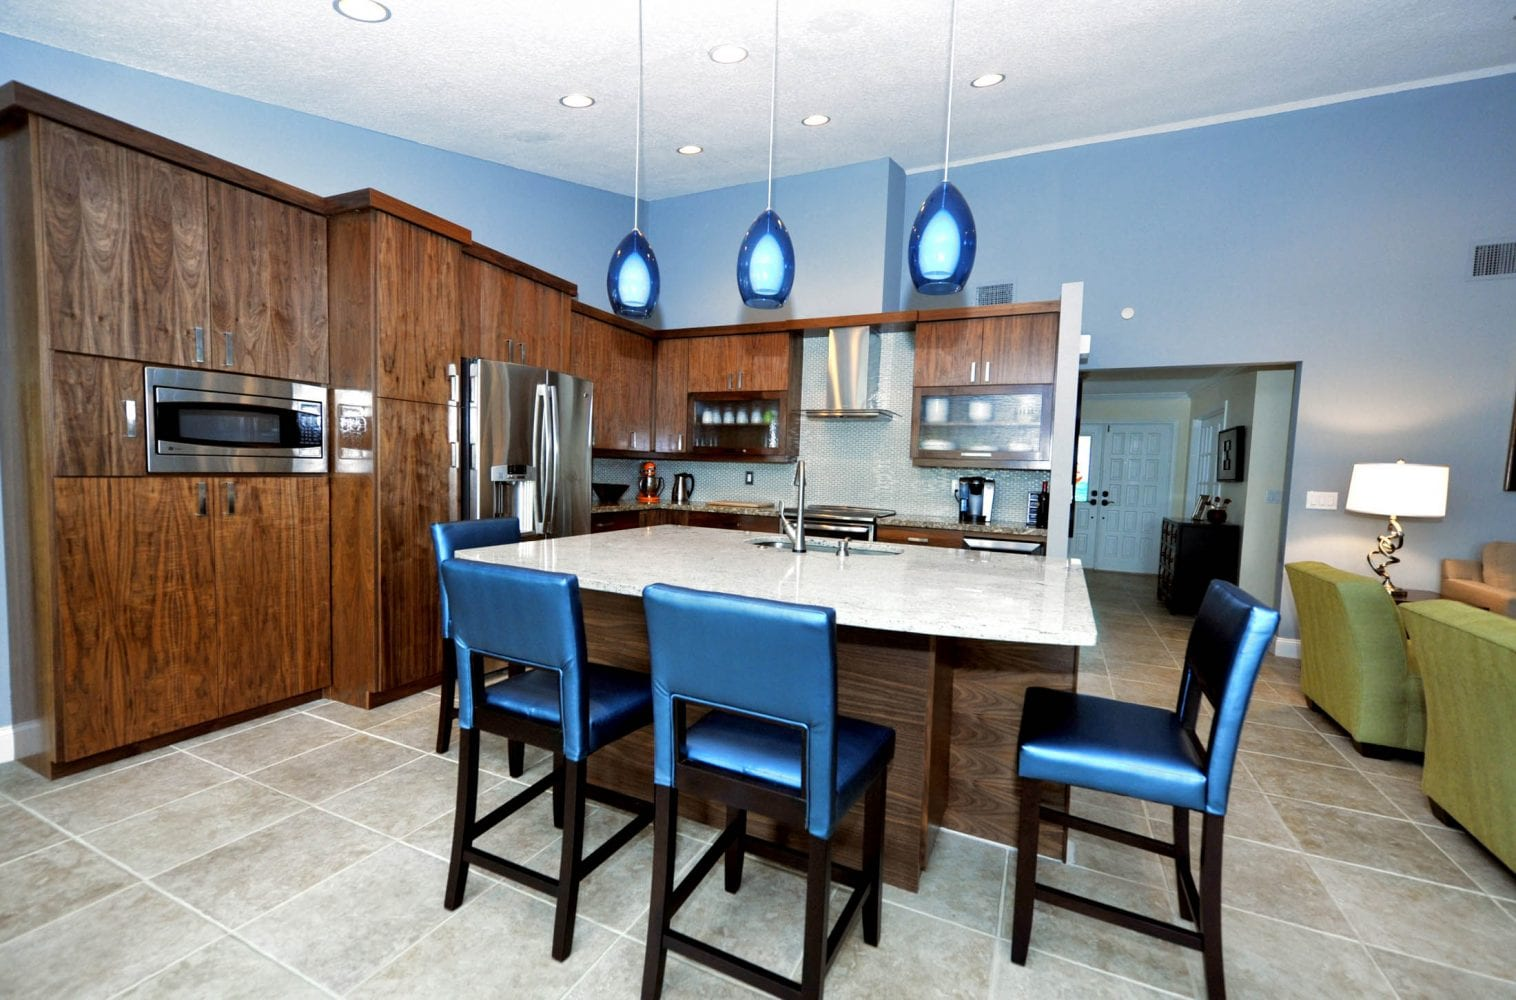 Lake Worth Residence Kitchen